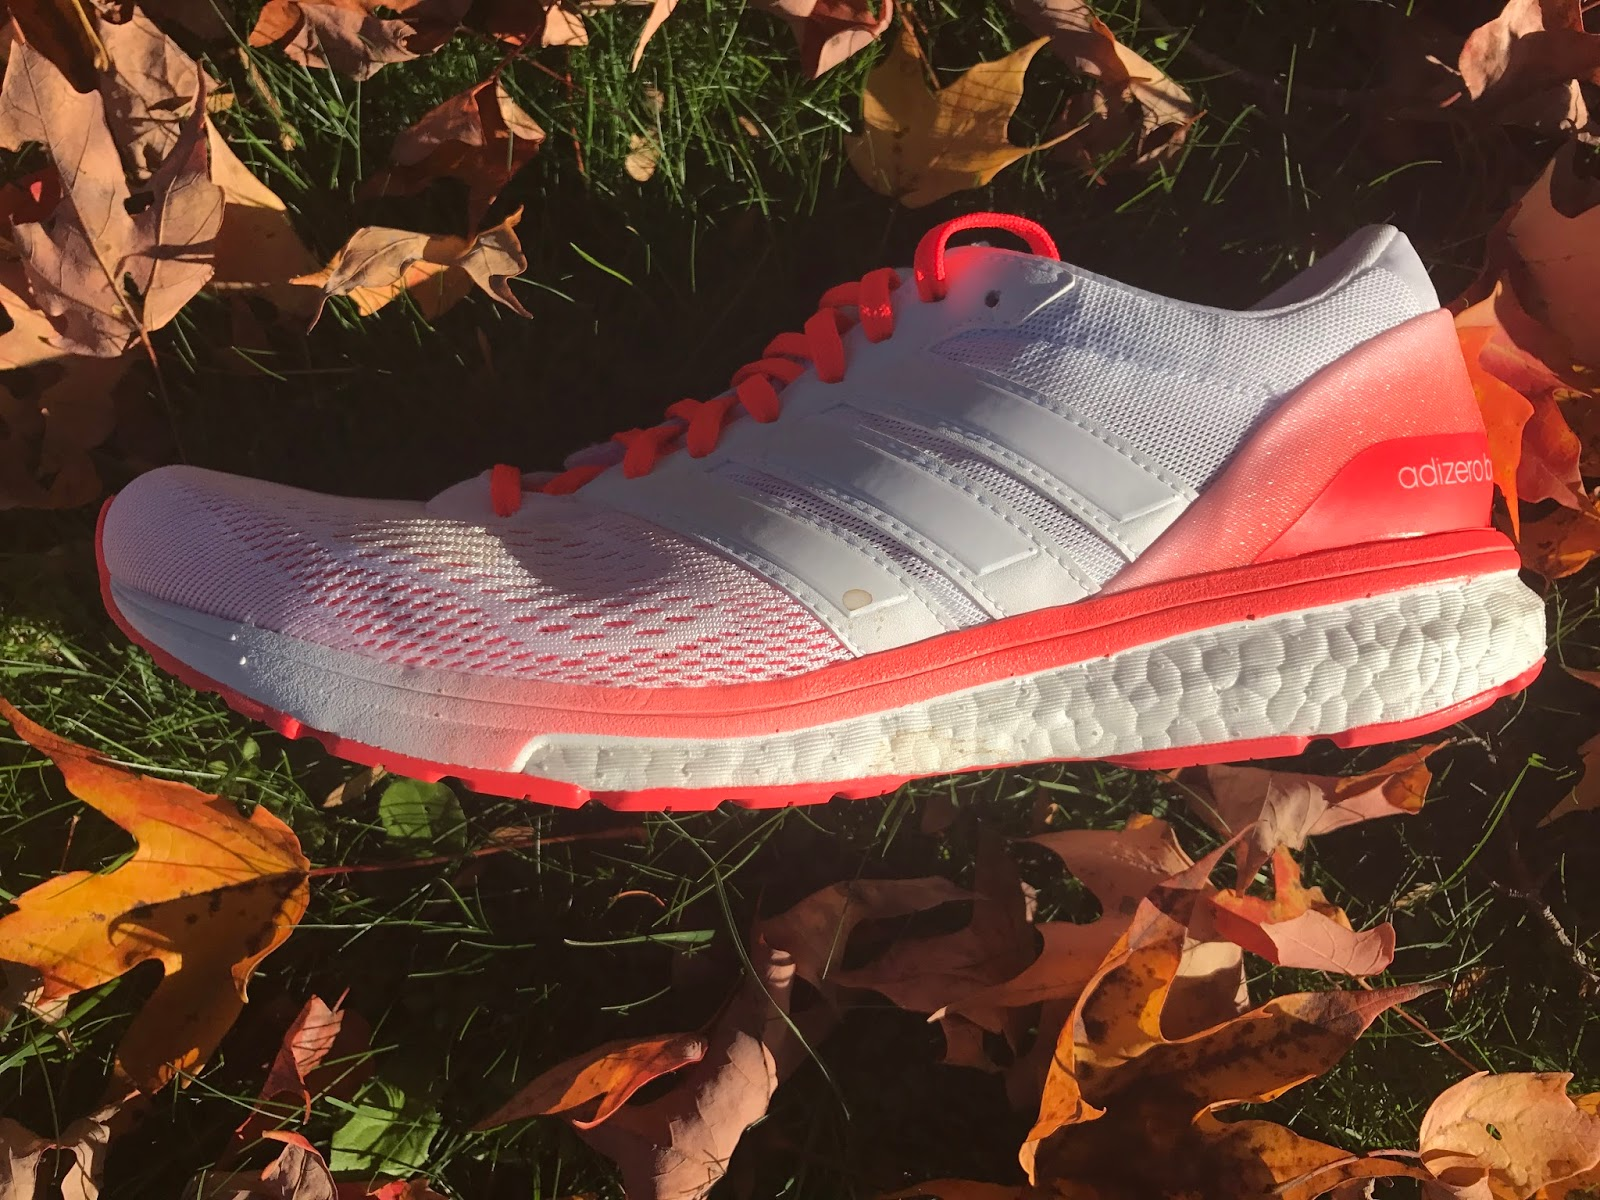 promo code 7737c 874e1 adidas adizero Boston 6 Review Truer to its Name. Versatile,Cushioned,  Comfortable. Smooth as Silk.